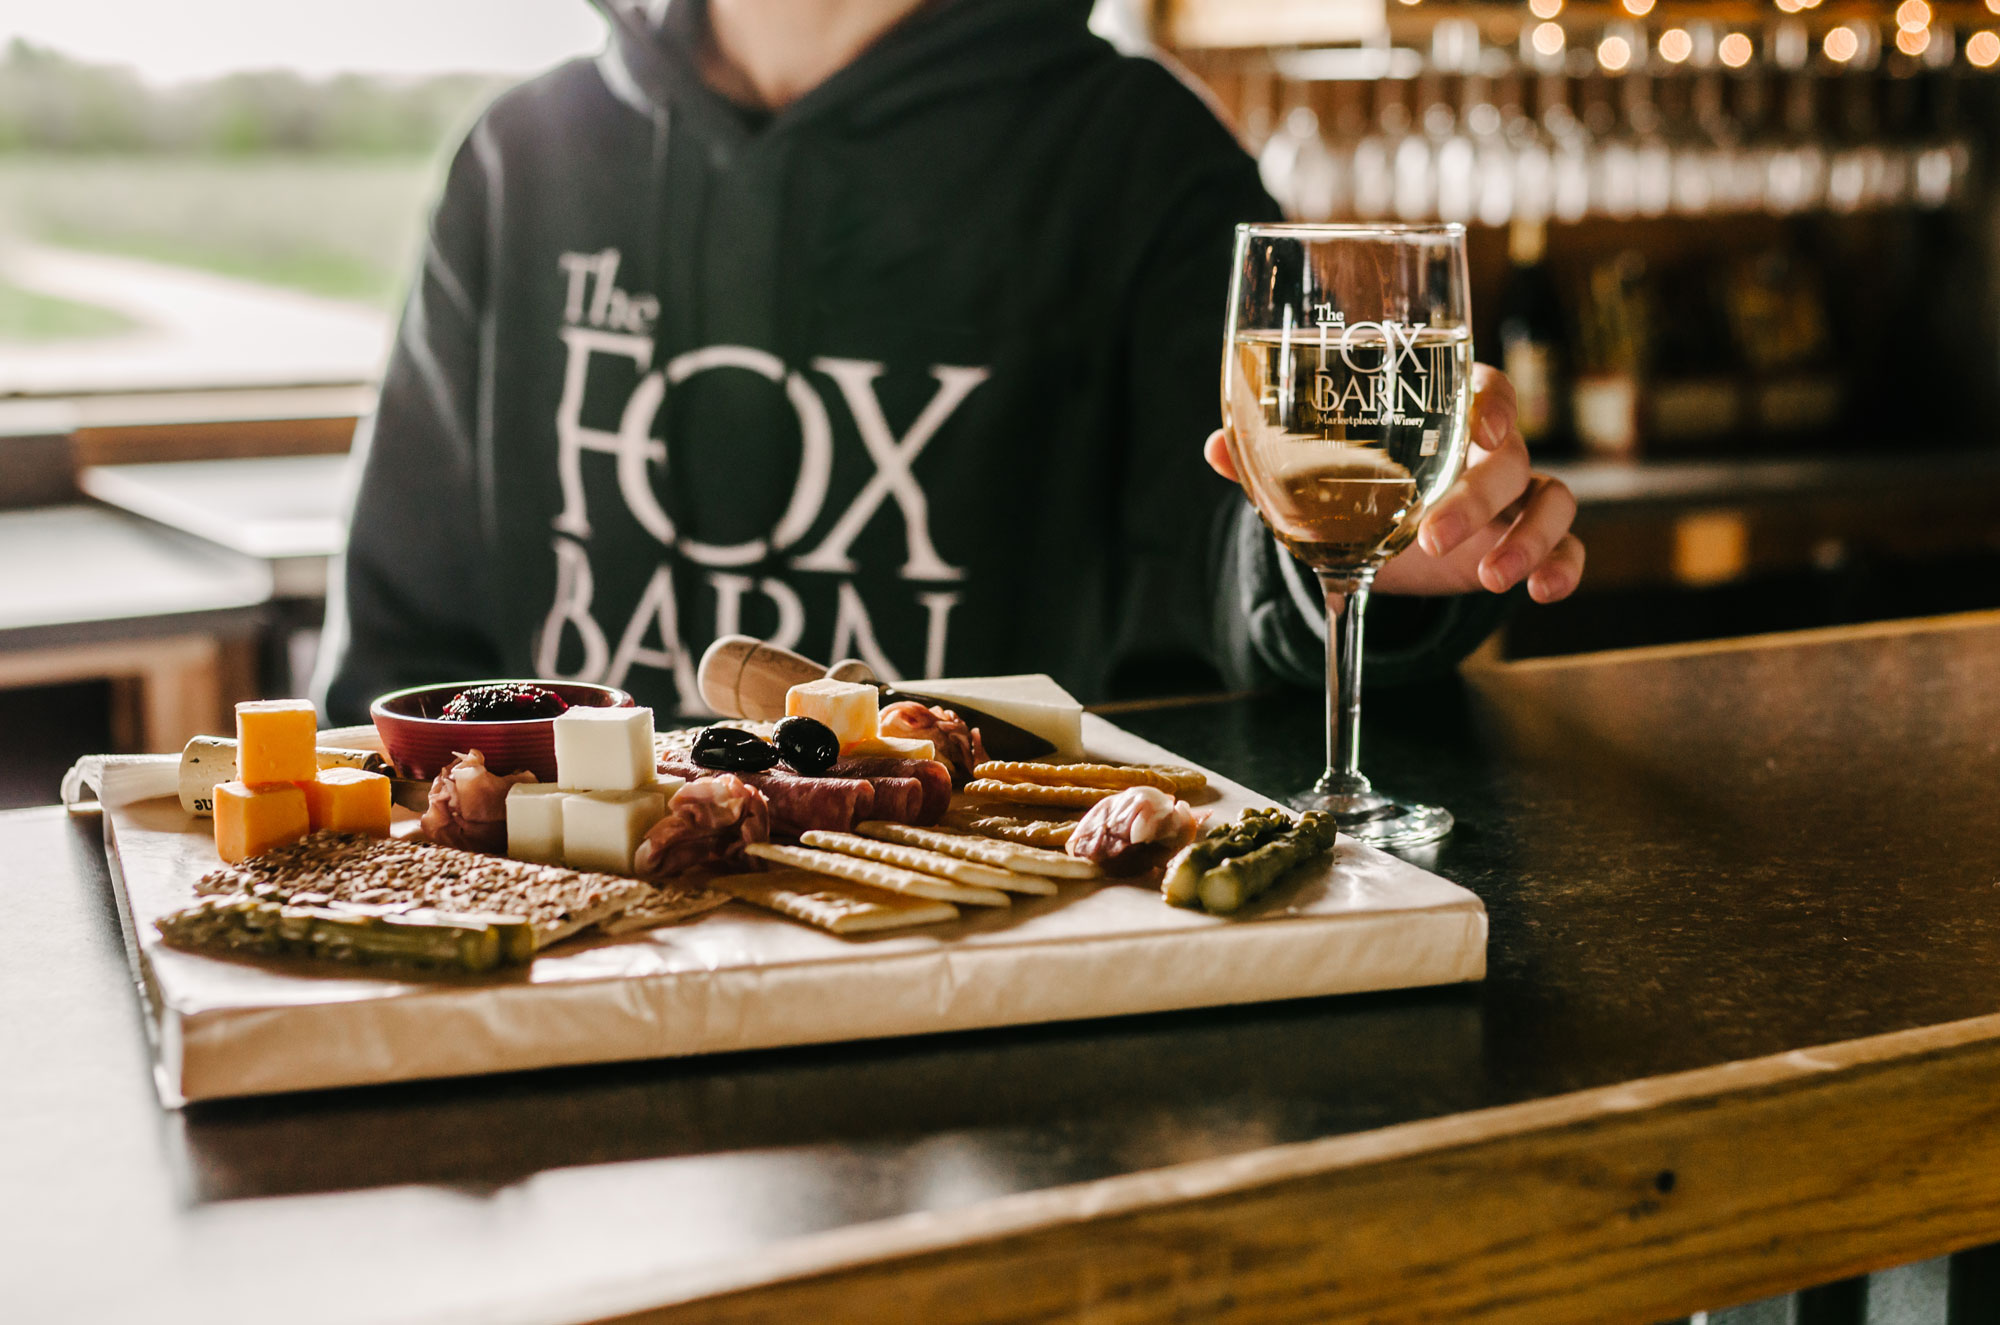 The Fox Barn Marketplace and Winery